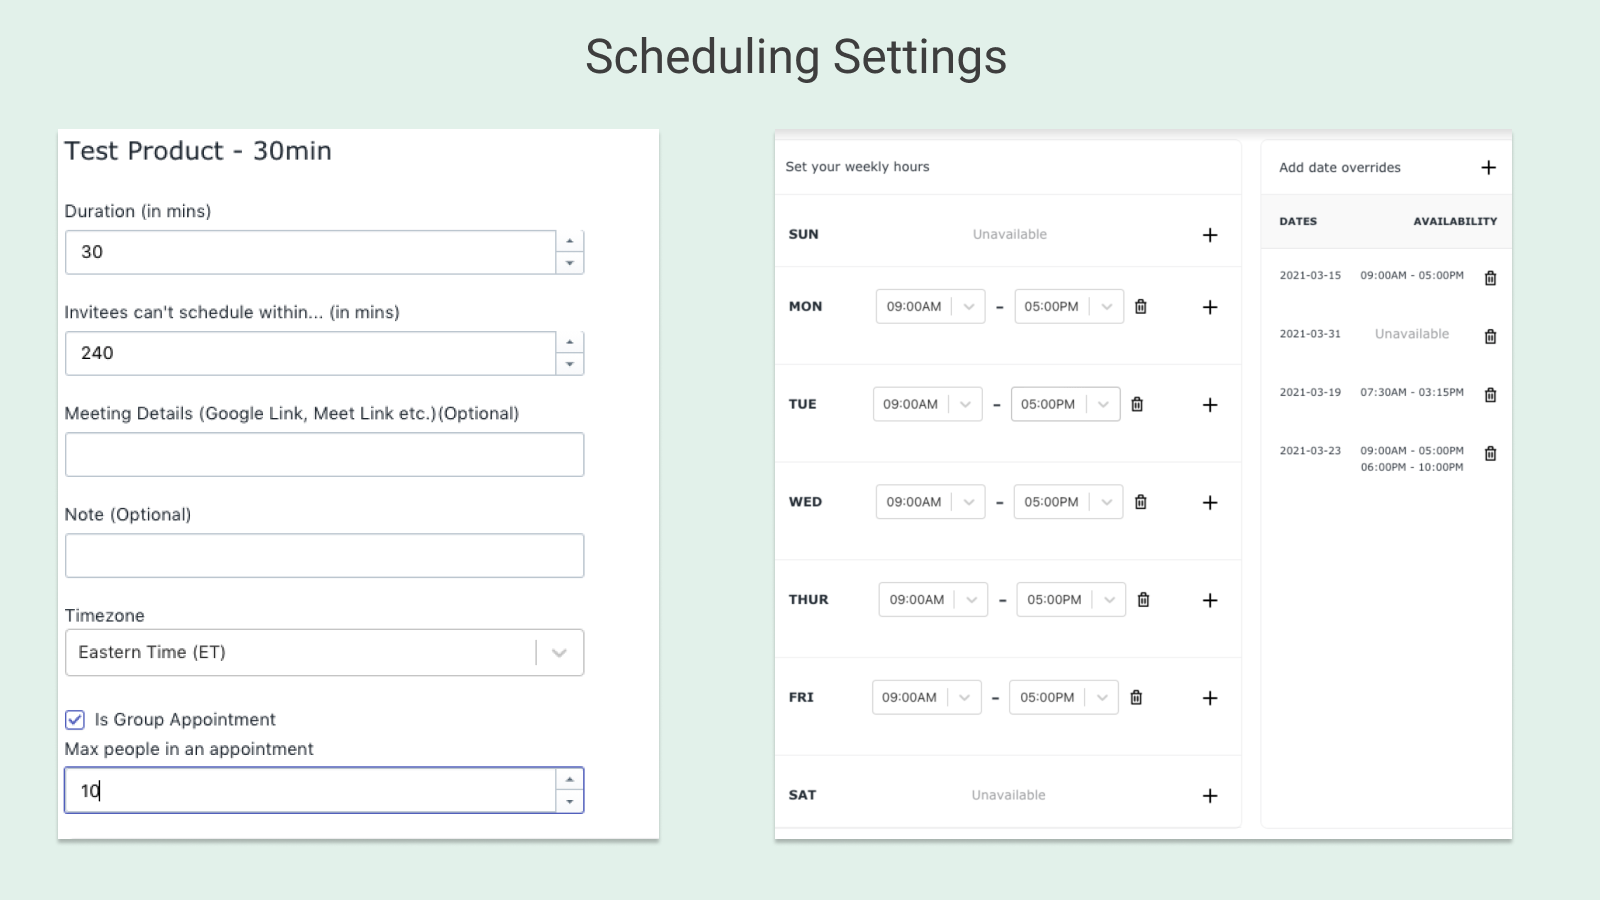 Scheduling Settings